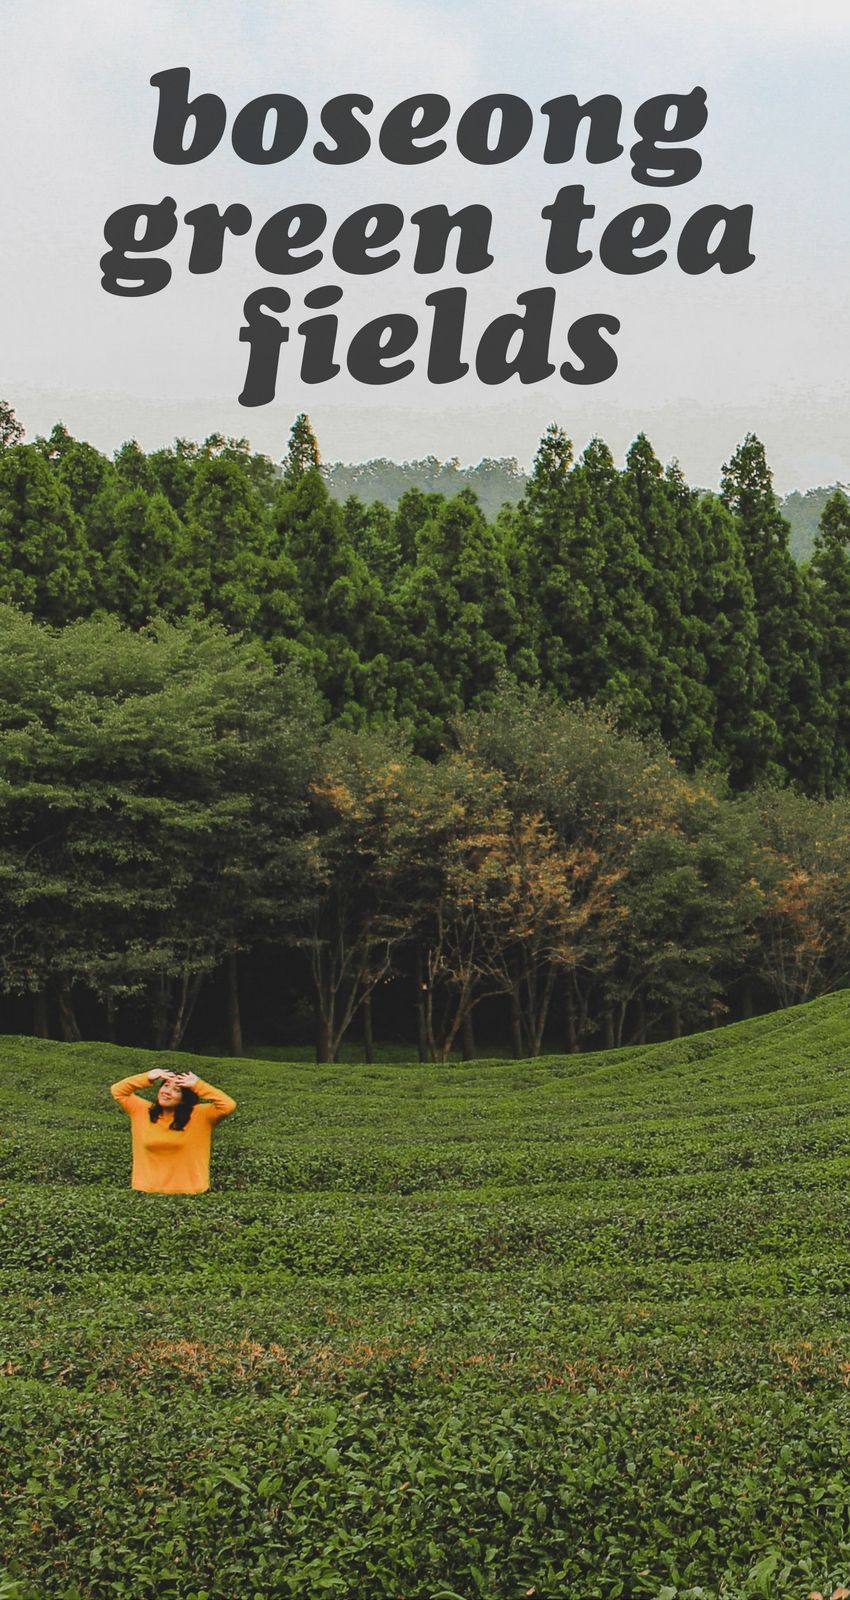 One of the best things to do in Korea is to get outdoors! The Boseong Green Tea Fields is one of the most gorgeous attractions to visit if you're looking to see the country. #koreatravel #boseong #outdoorstravel